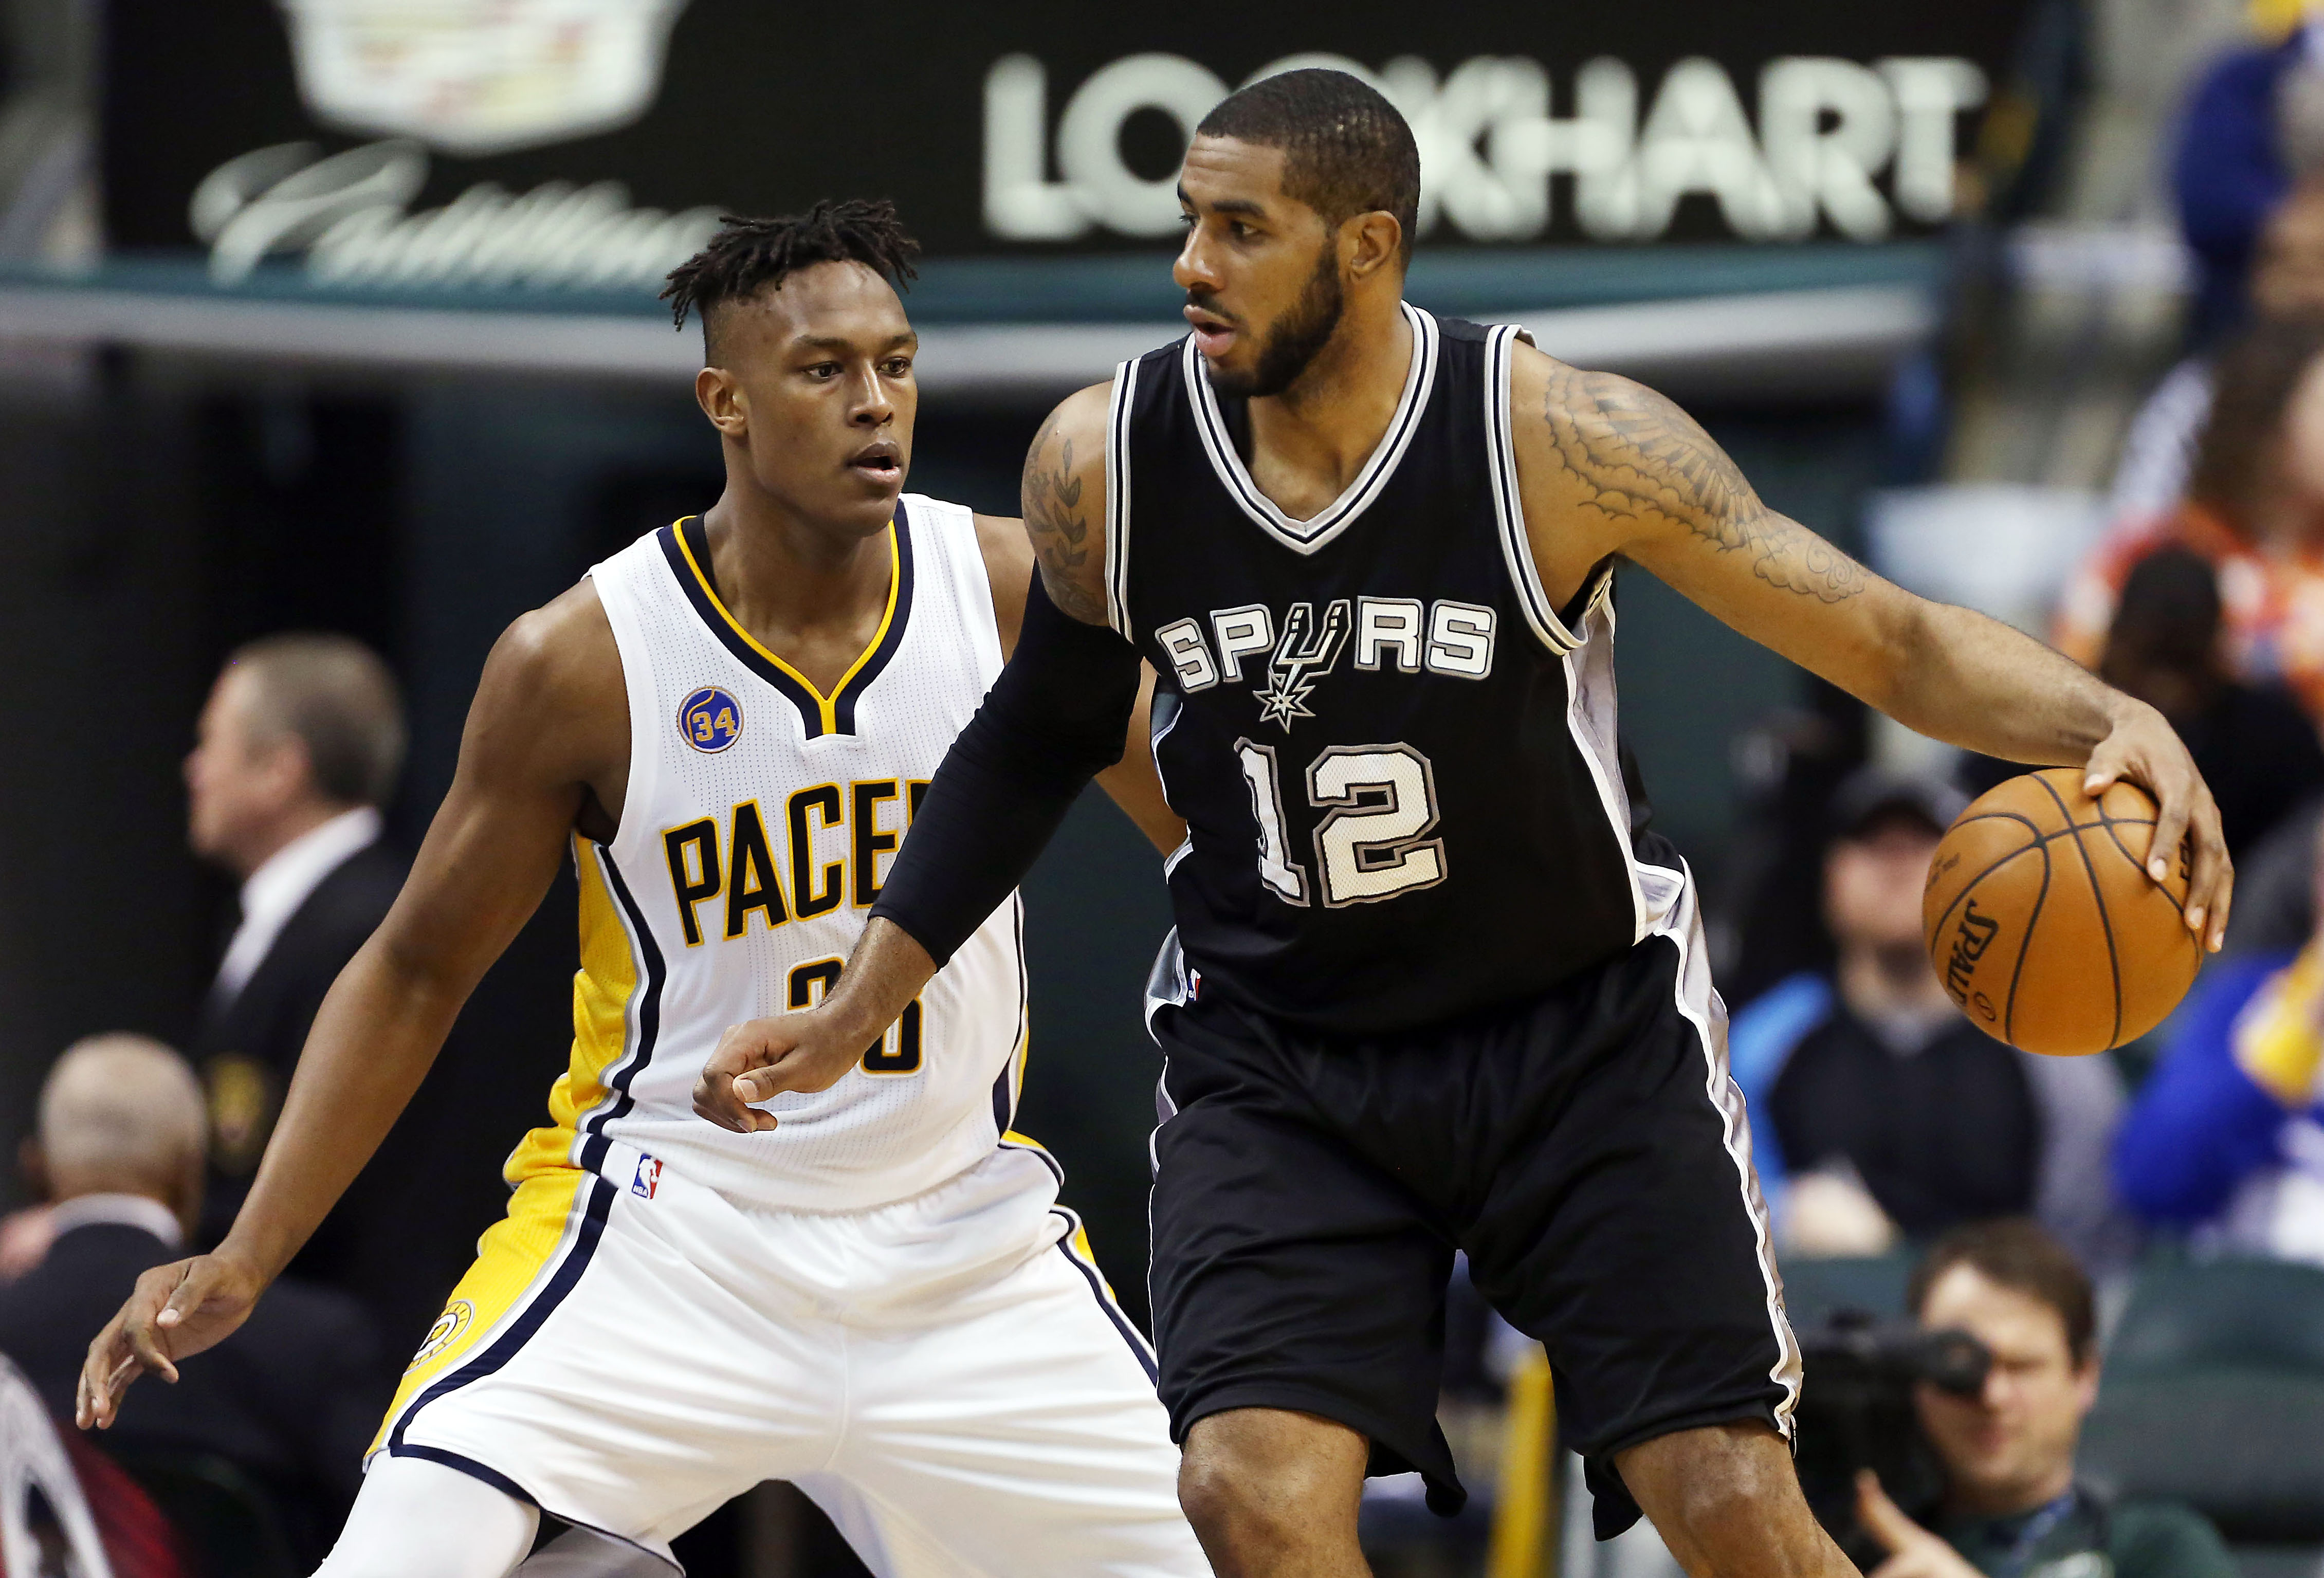 9166677-nba-san-antonio-spurs-at-indiana-pacers